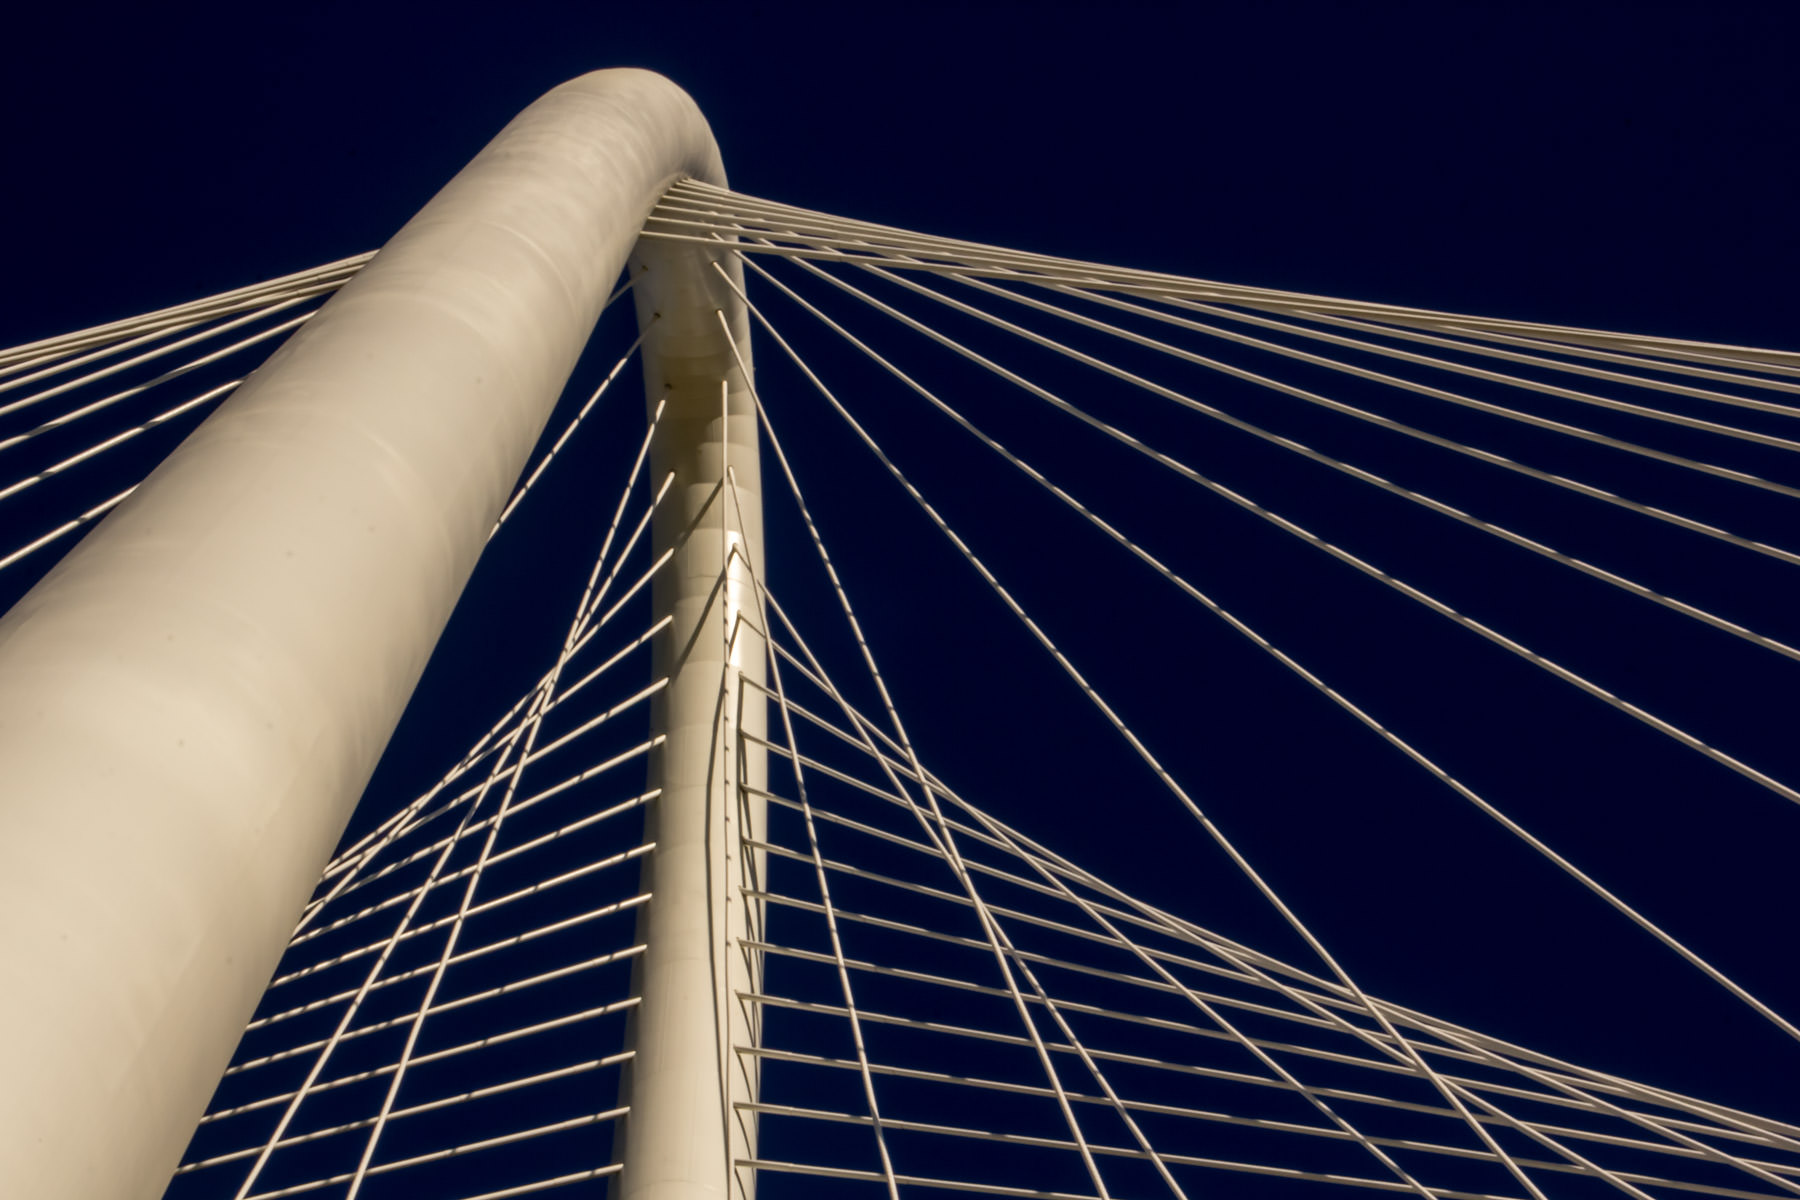 The main arch and the support cables for Santiago Calatrava's Margaret Hunt Hill Bridge, Dallas.